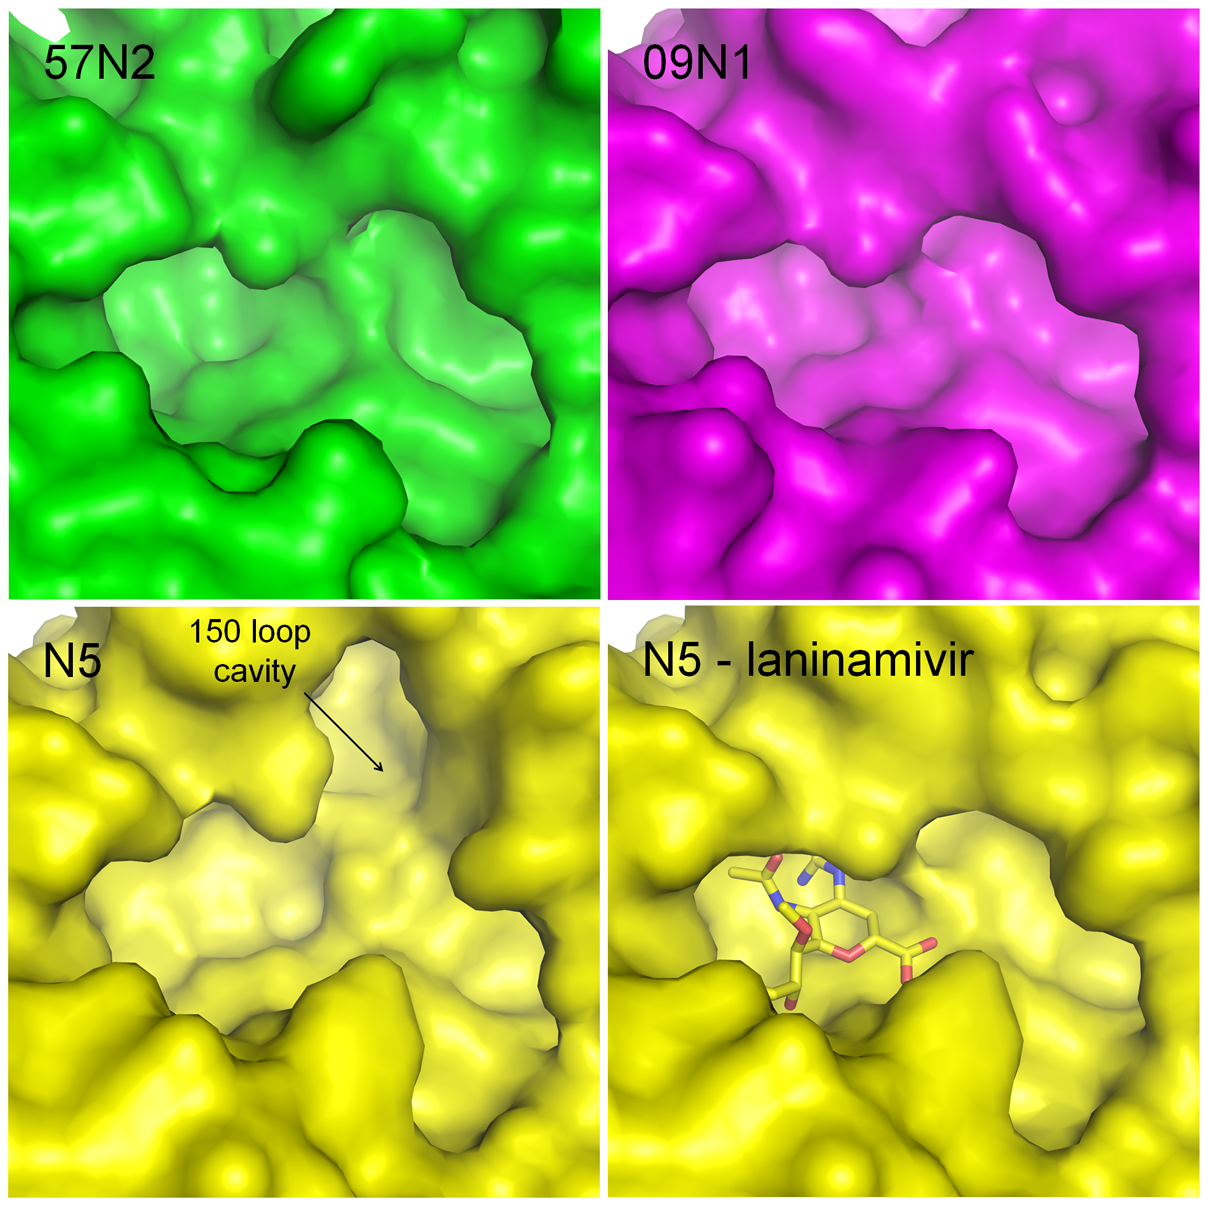 Comparison of the active sites of p57N2, p09N1 and N5.